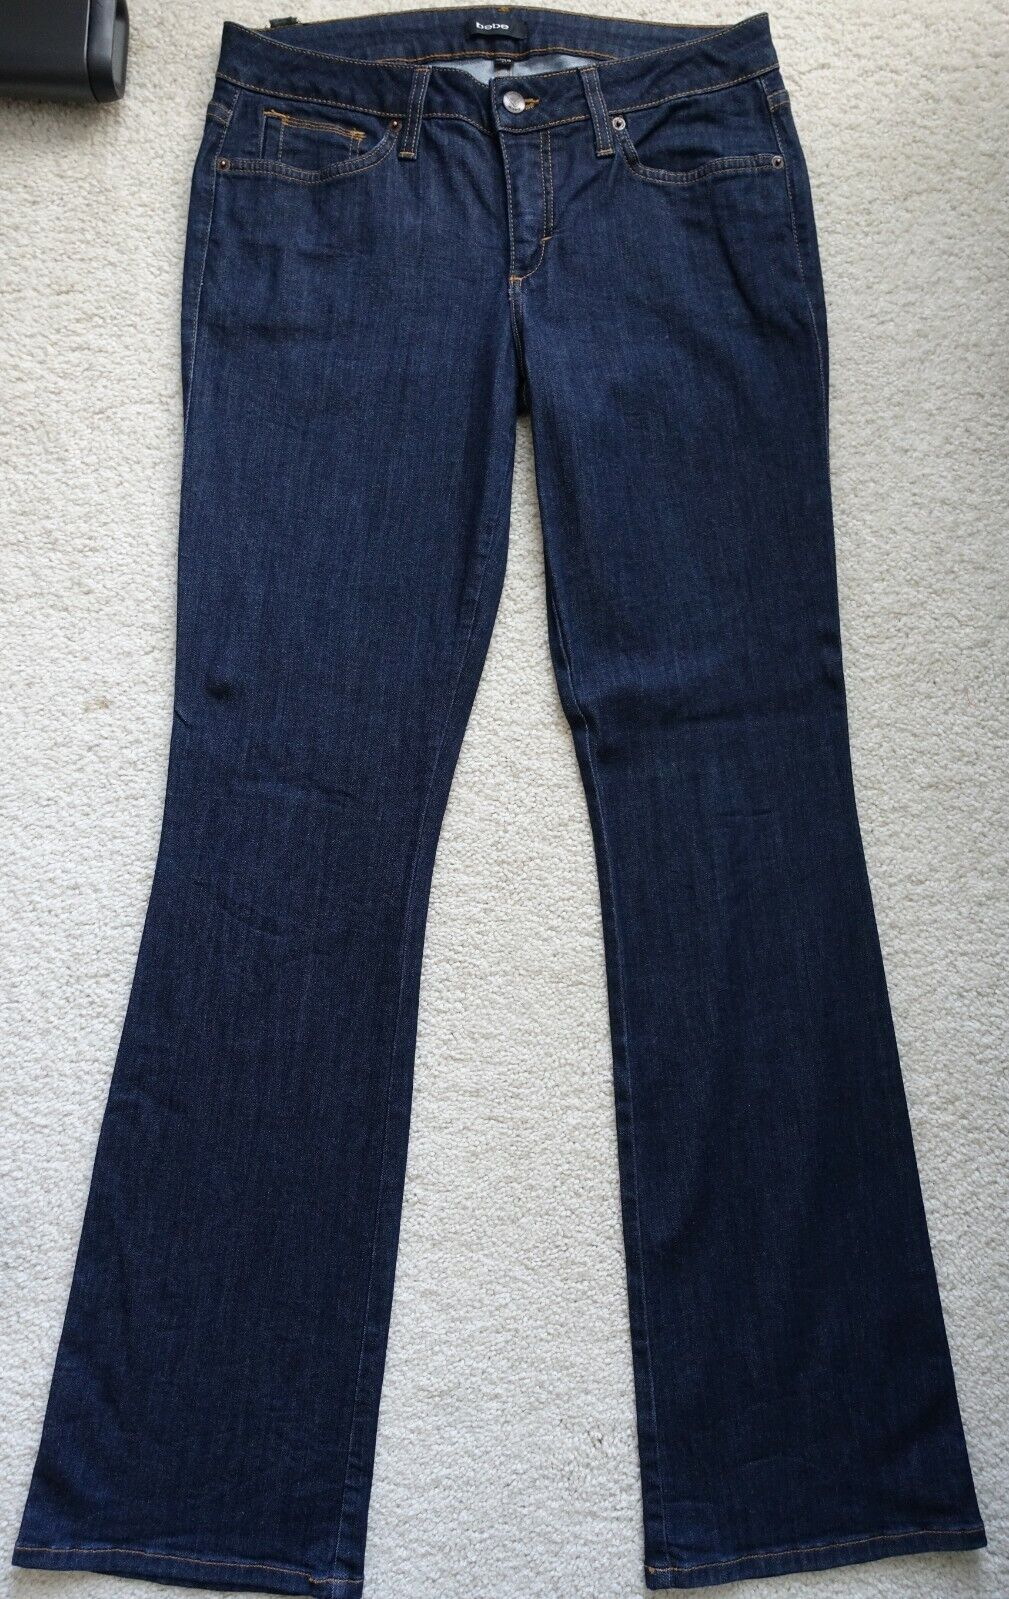 Bebe womens dark stretchy jeans 30x34 long tall